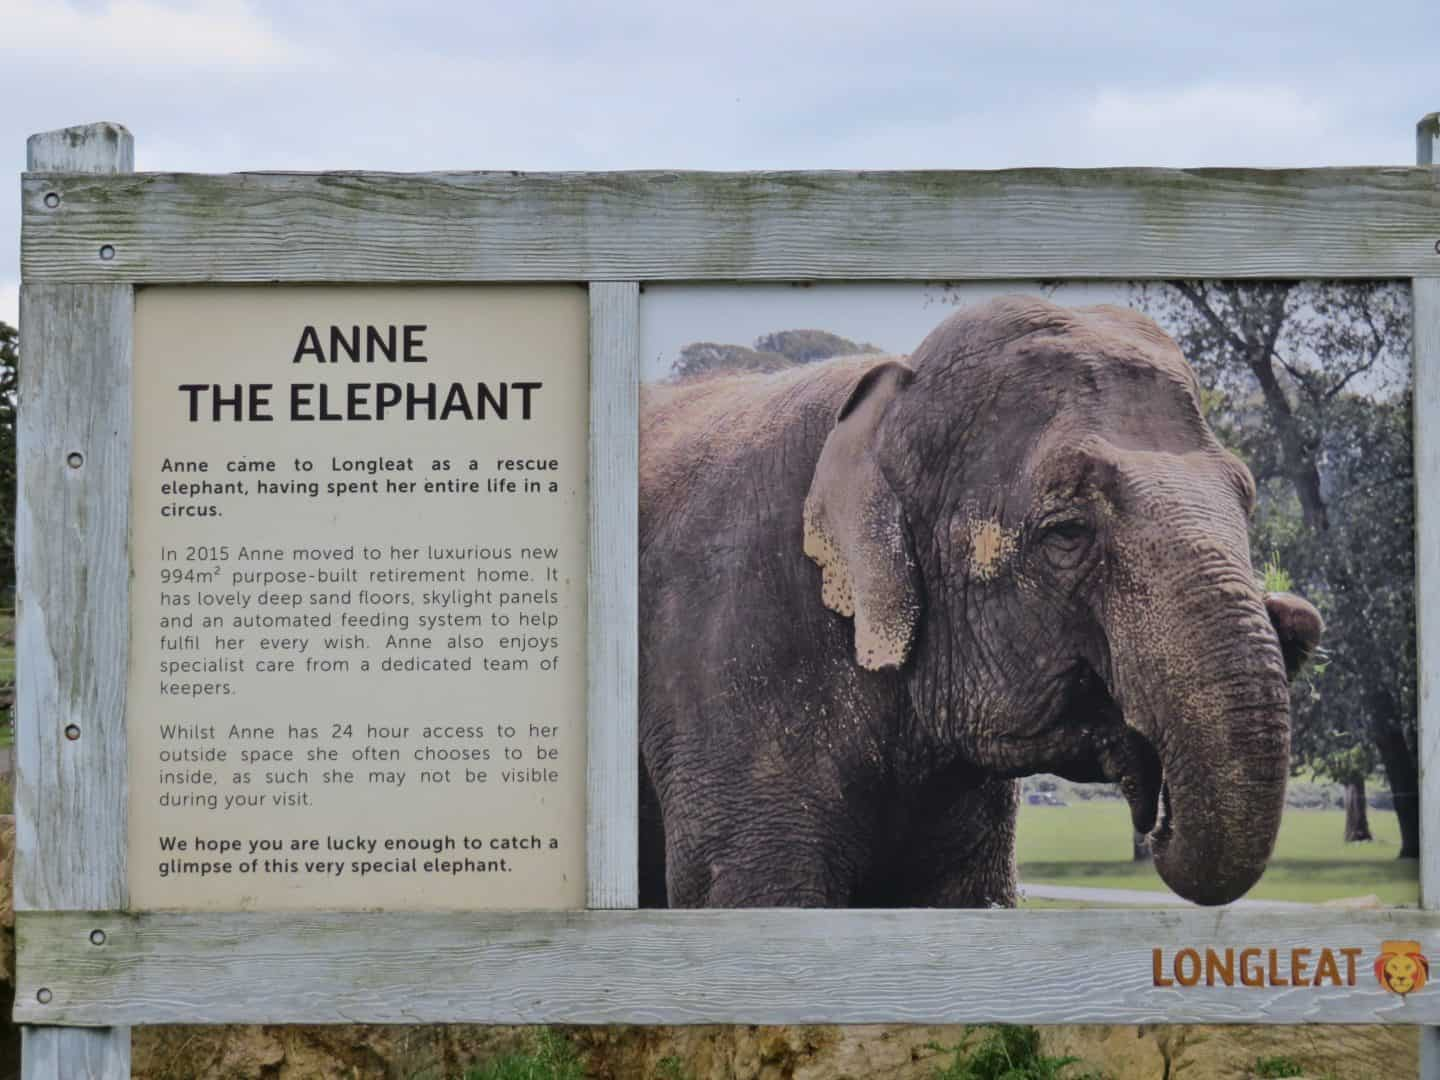 Sign with information about Anne the elephant at Longleat Safari Park